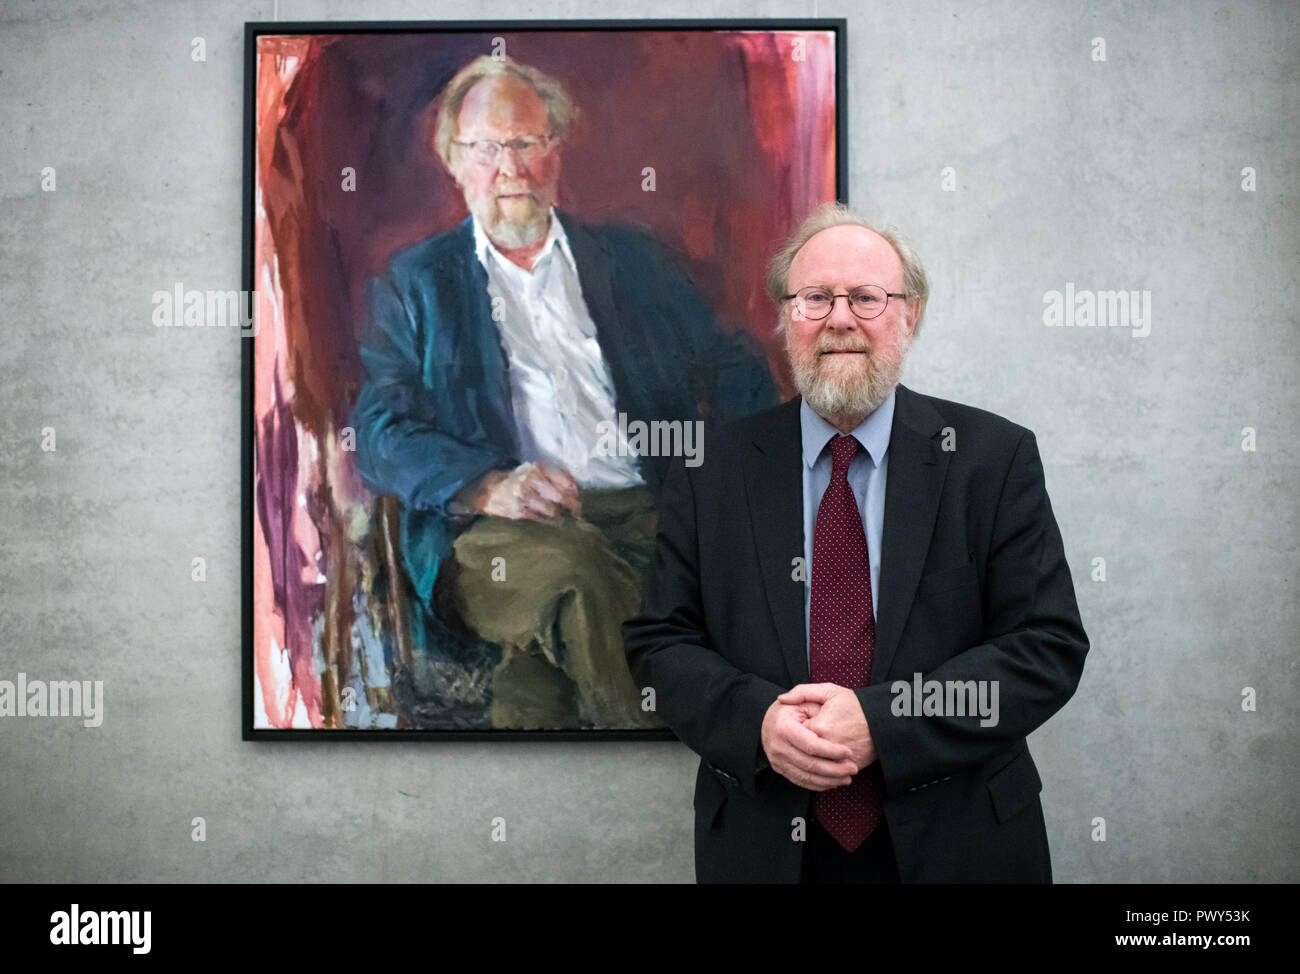 Berlin, Germany. 18th Oct, 2018. The former president of the Bundestag Wolfgang Thierse (SPD) is standing in the gallery of the presidents of the Bundestag in the Paul-Löbe-Haus on the occasion of the inauguration of his portrait. Credit: Bernd von Jutrczenka/dpa/Alamy Live News - Stock Image